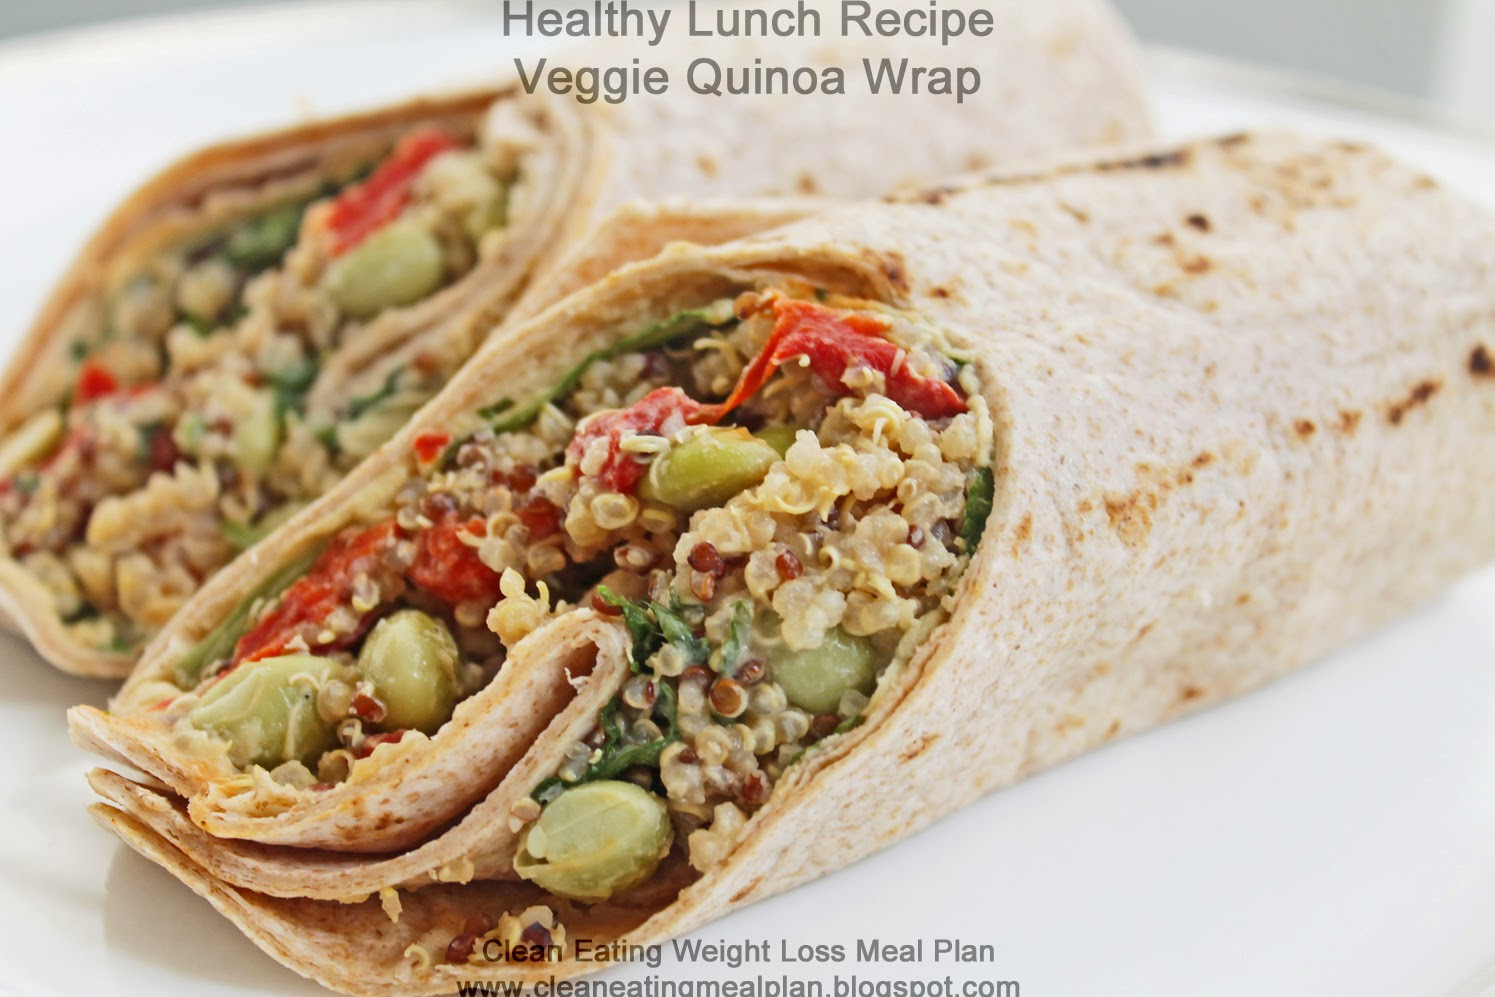 Healthy Lunch Recipes For Weight Loss  Healthy Lunch Recipe for Weight Loss Meal Plan Veggie